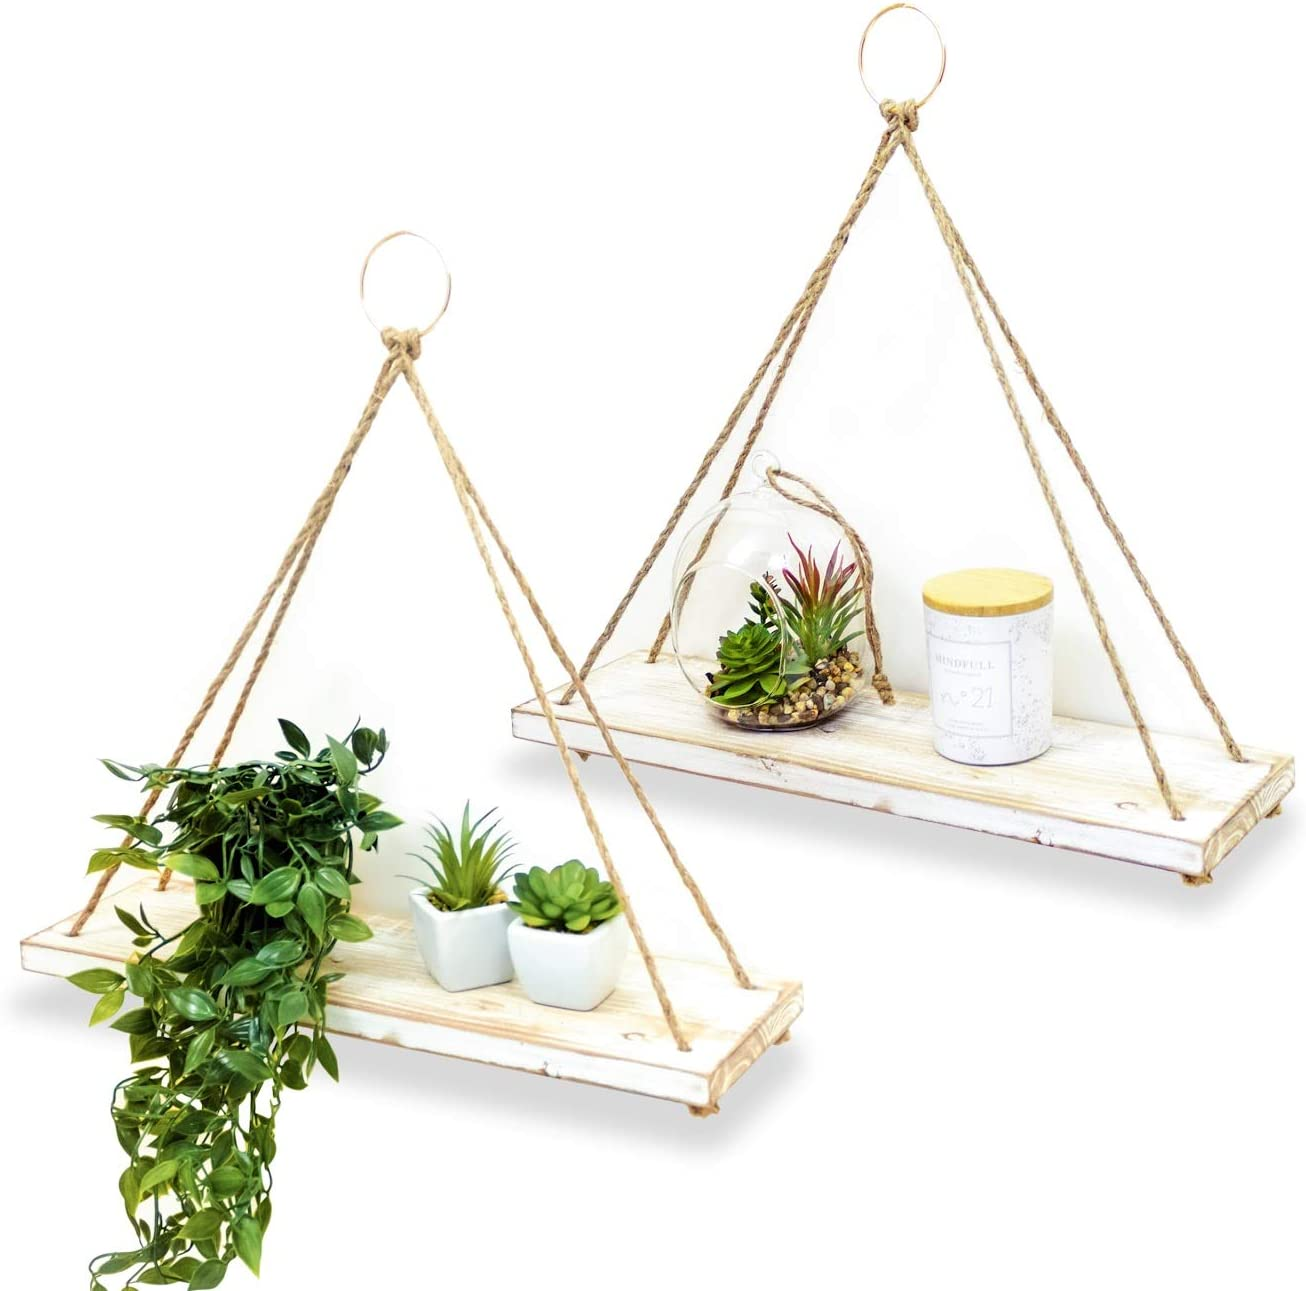 BAMB2 Floating Wall Shelves Set of 2 Farmhouse Plant Hangers for Home Office Rustic Home D cor Mounting Accessories Included Practical and Sturdy Design Ideal for Pots, Books, Frames